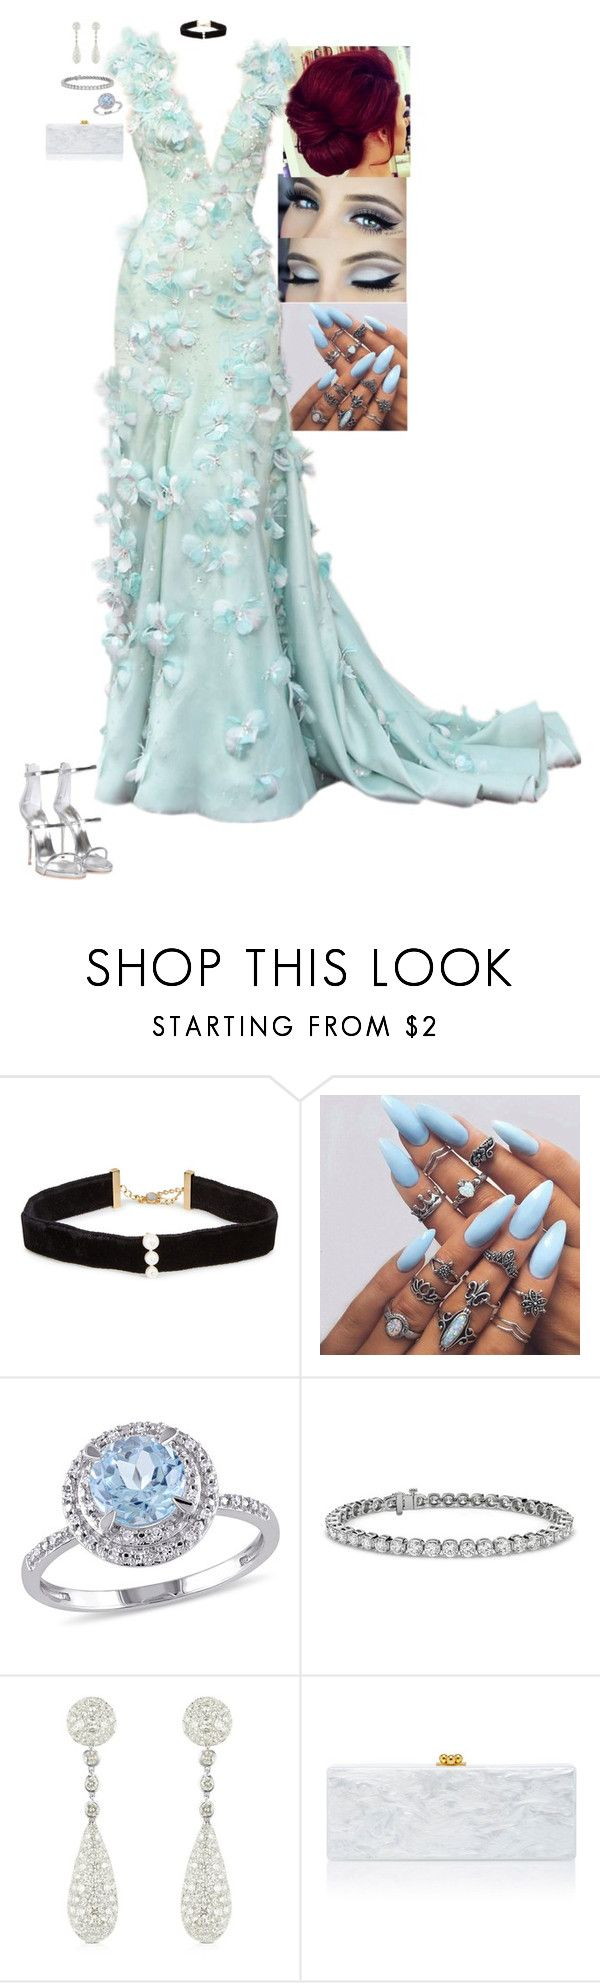 """Glass Slipper - Cocktails by Cody"" by stinze on Polyvore featuring Anissa Kermiche, Modern Bride, Blue Nile, Giorgio Armani, Colucci Diamonds, Edie Parker and Giuseppe Zanotti"